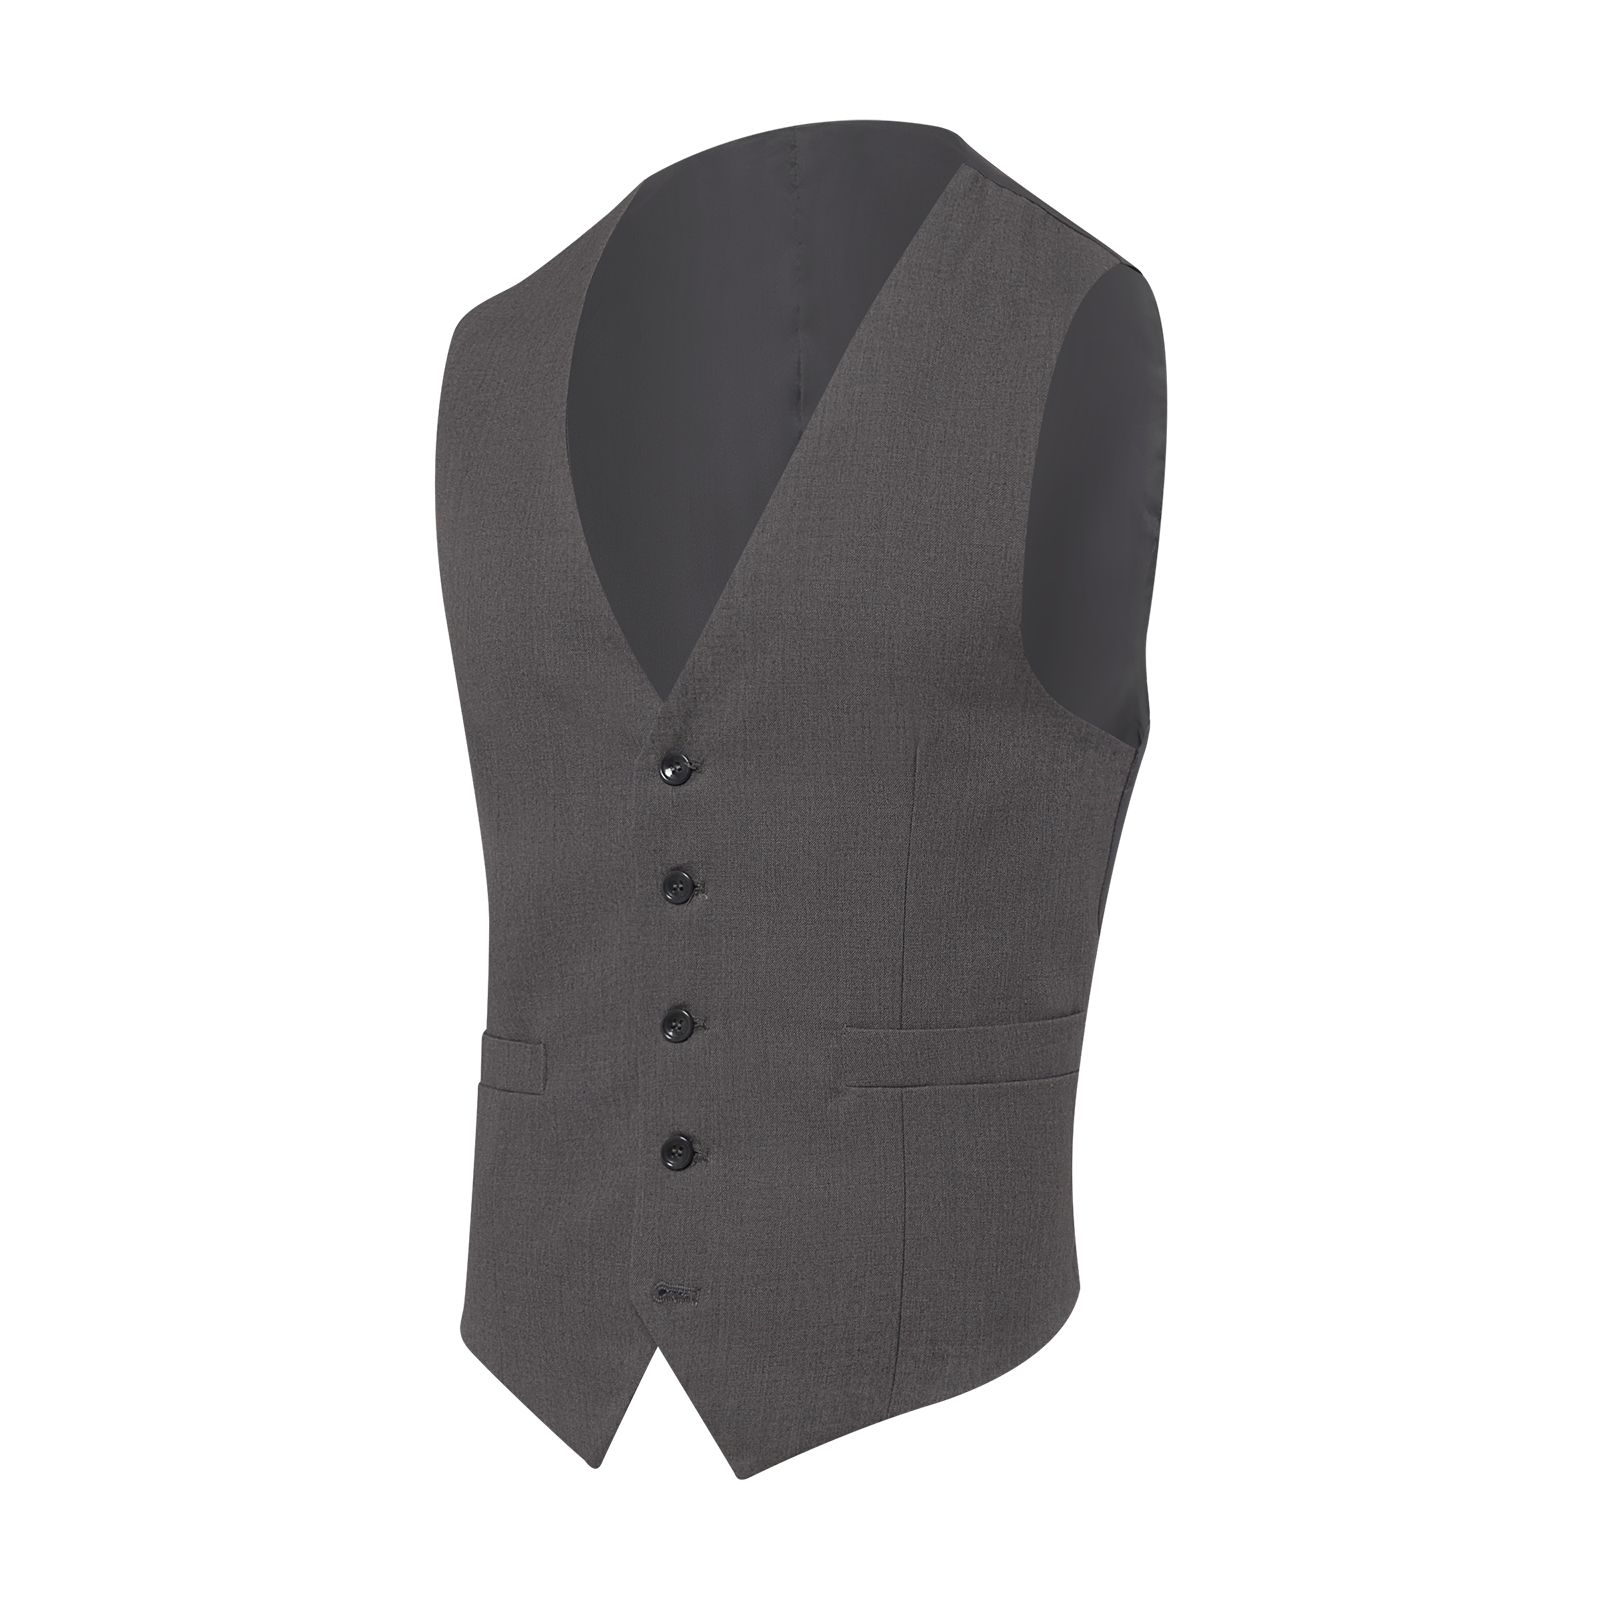 Ghost mannequin vest product photography